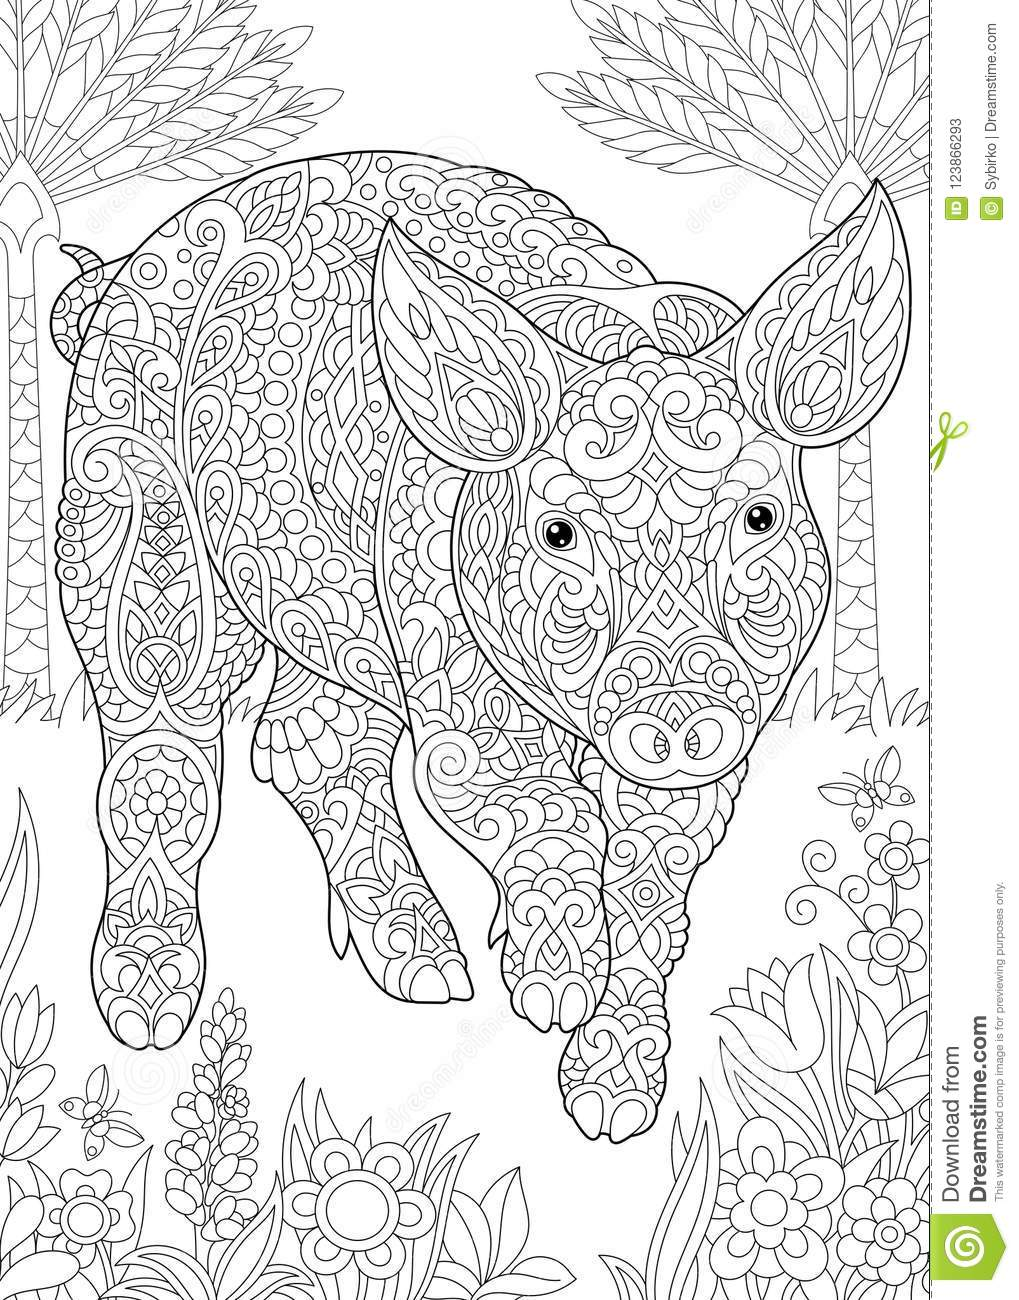 Coloring page coloring book colouring picture with pig cute piggy 2019 chinese new year symbol antistress freehand sketch drawing with doodle and